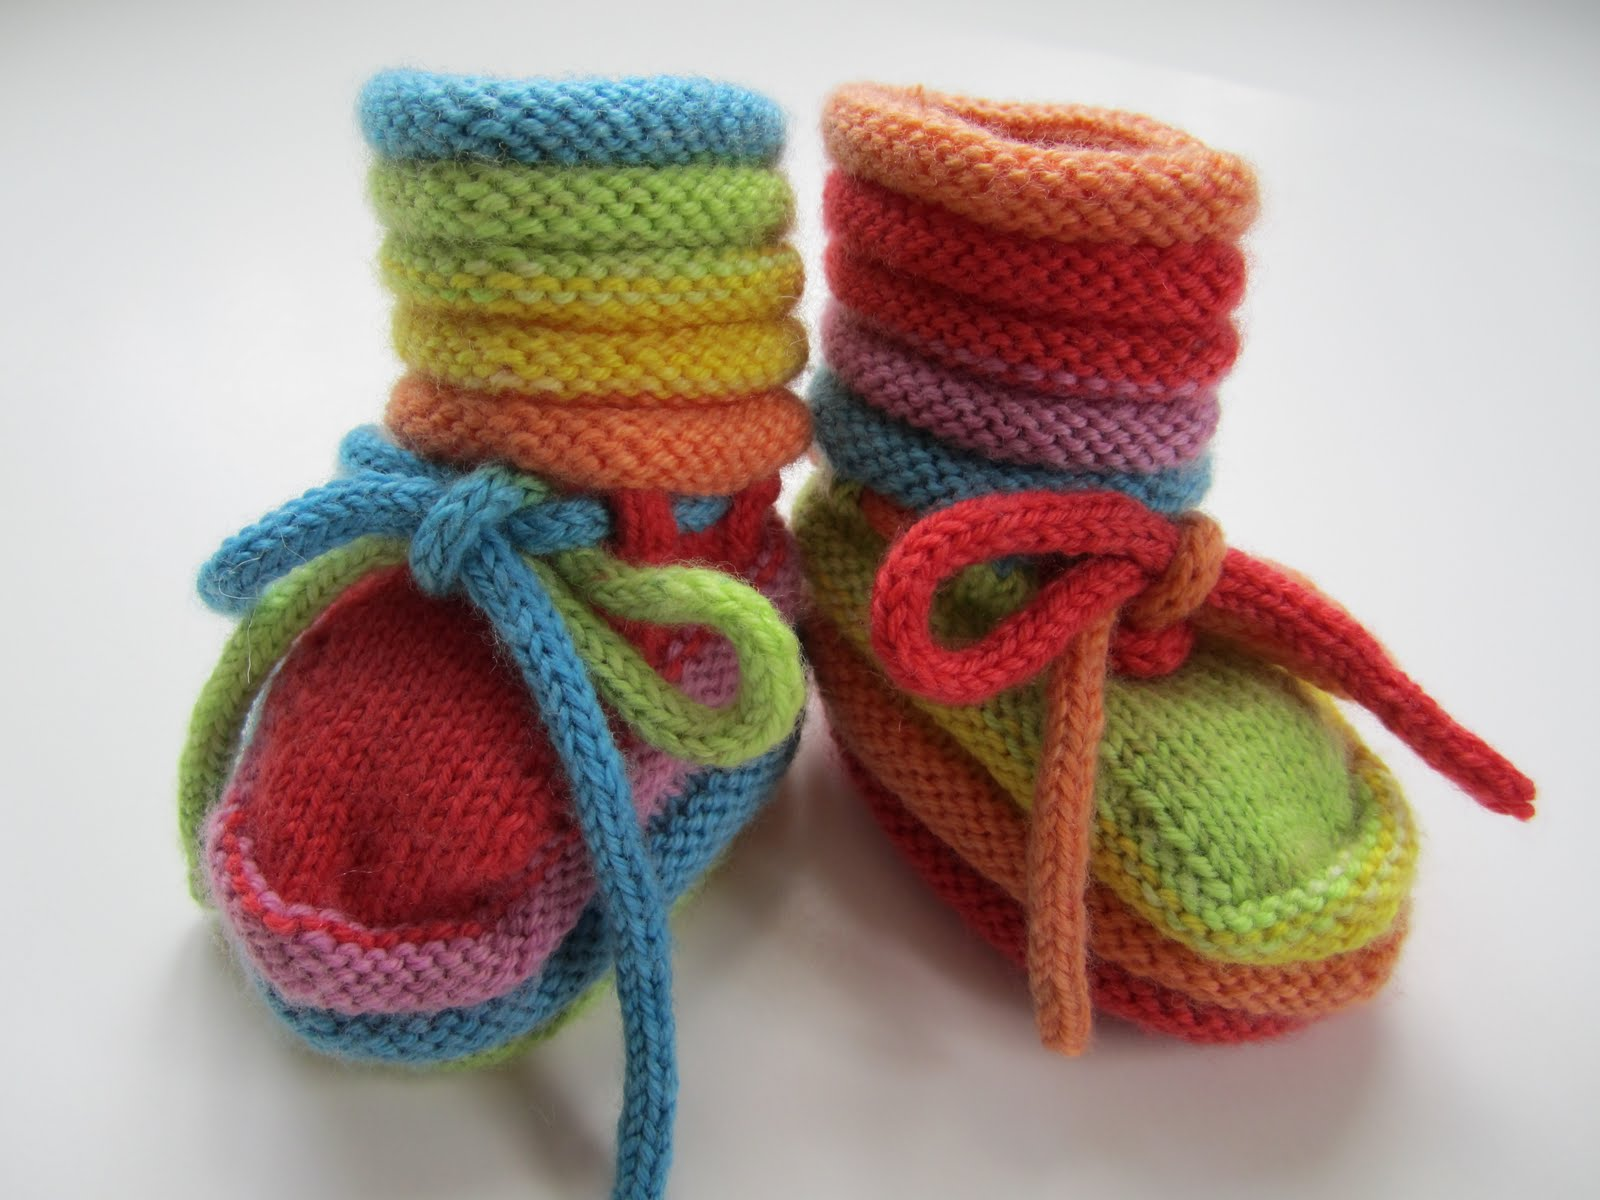 Knitting Circle Loom Patterns : Baby Booties Knit Patterns A Knitting Blog